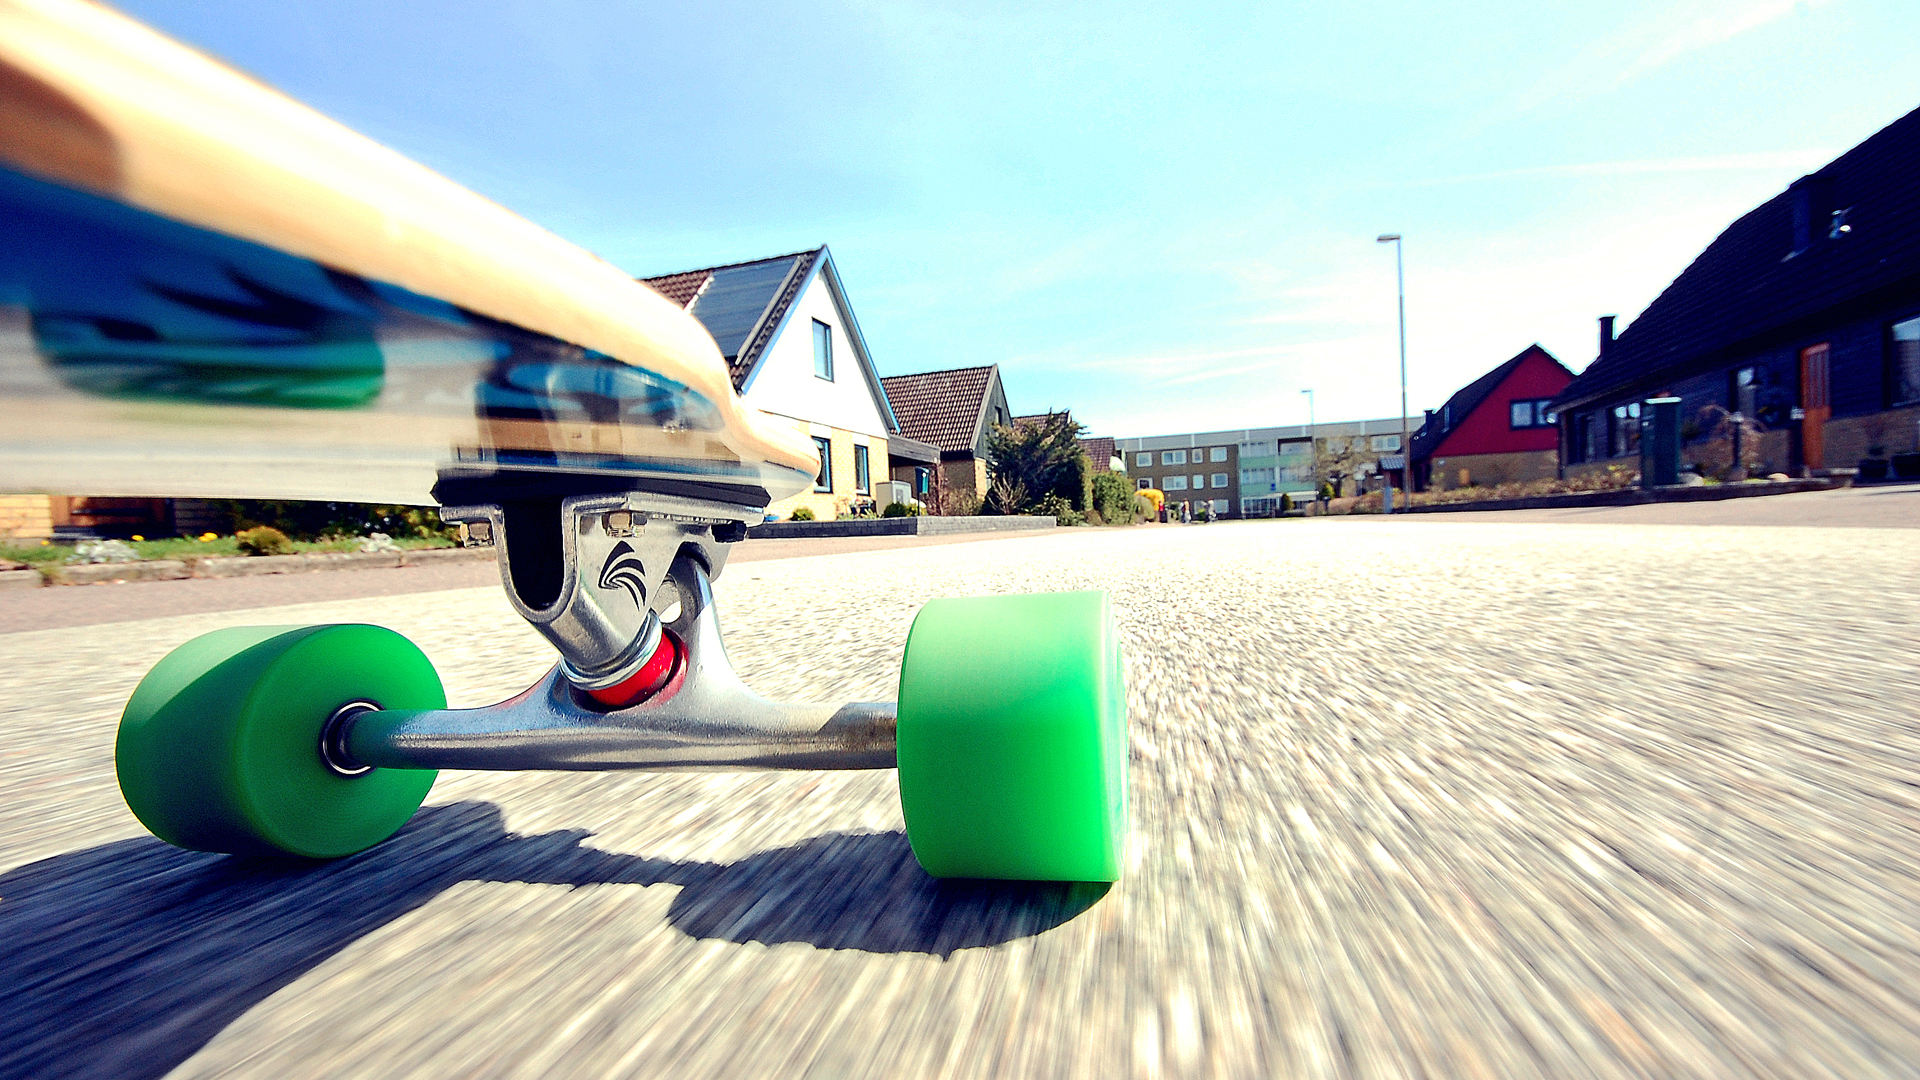 Cool Longboard Wallpaper 9491